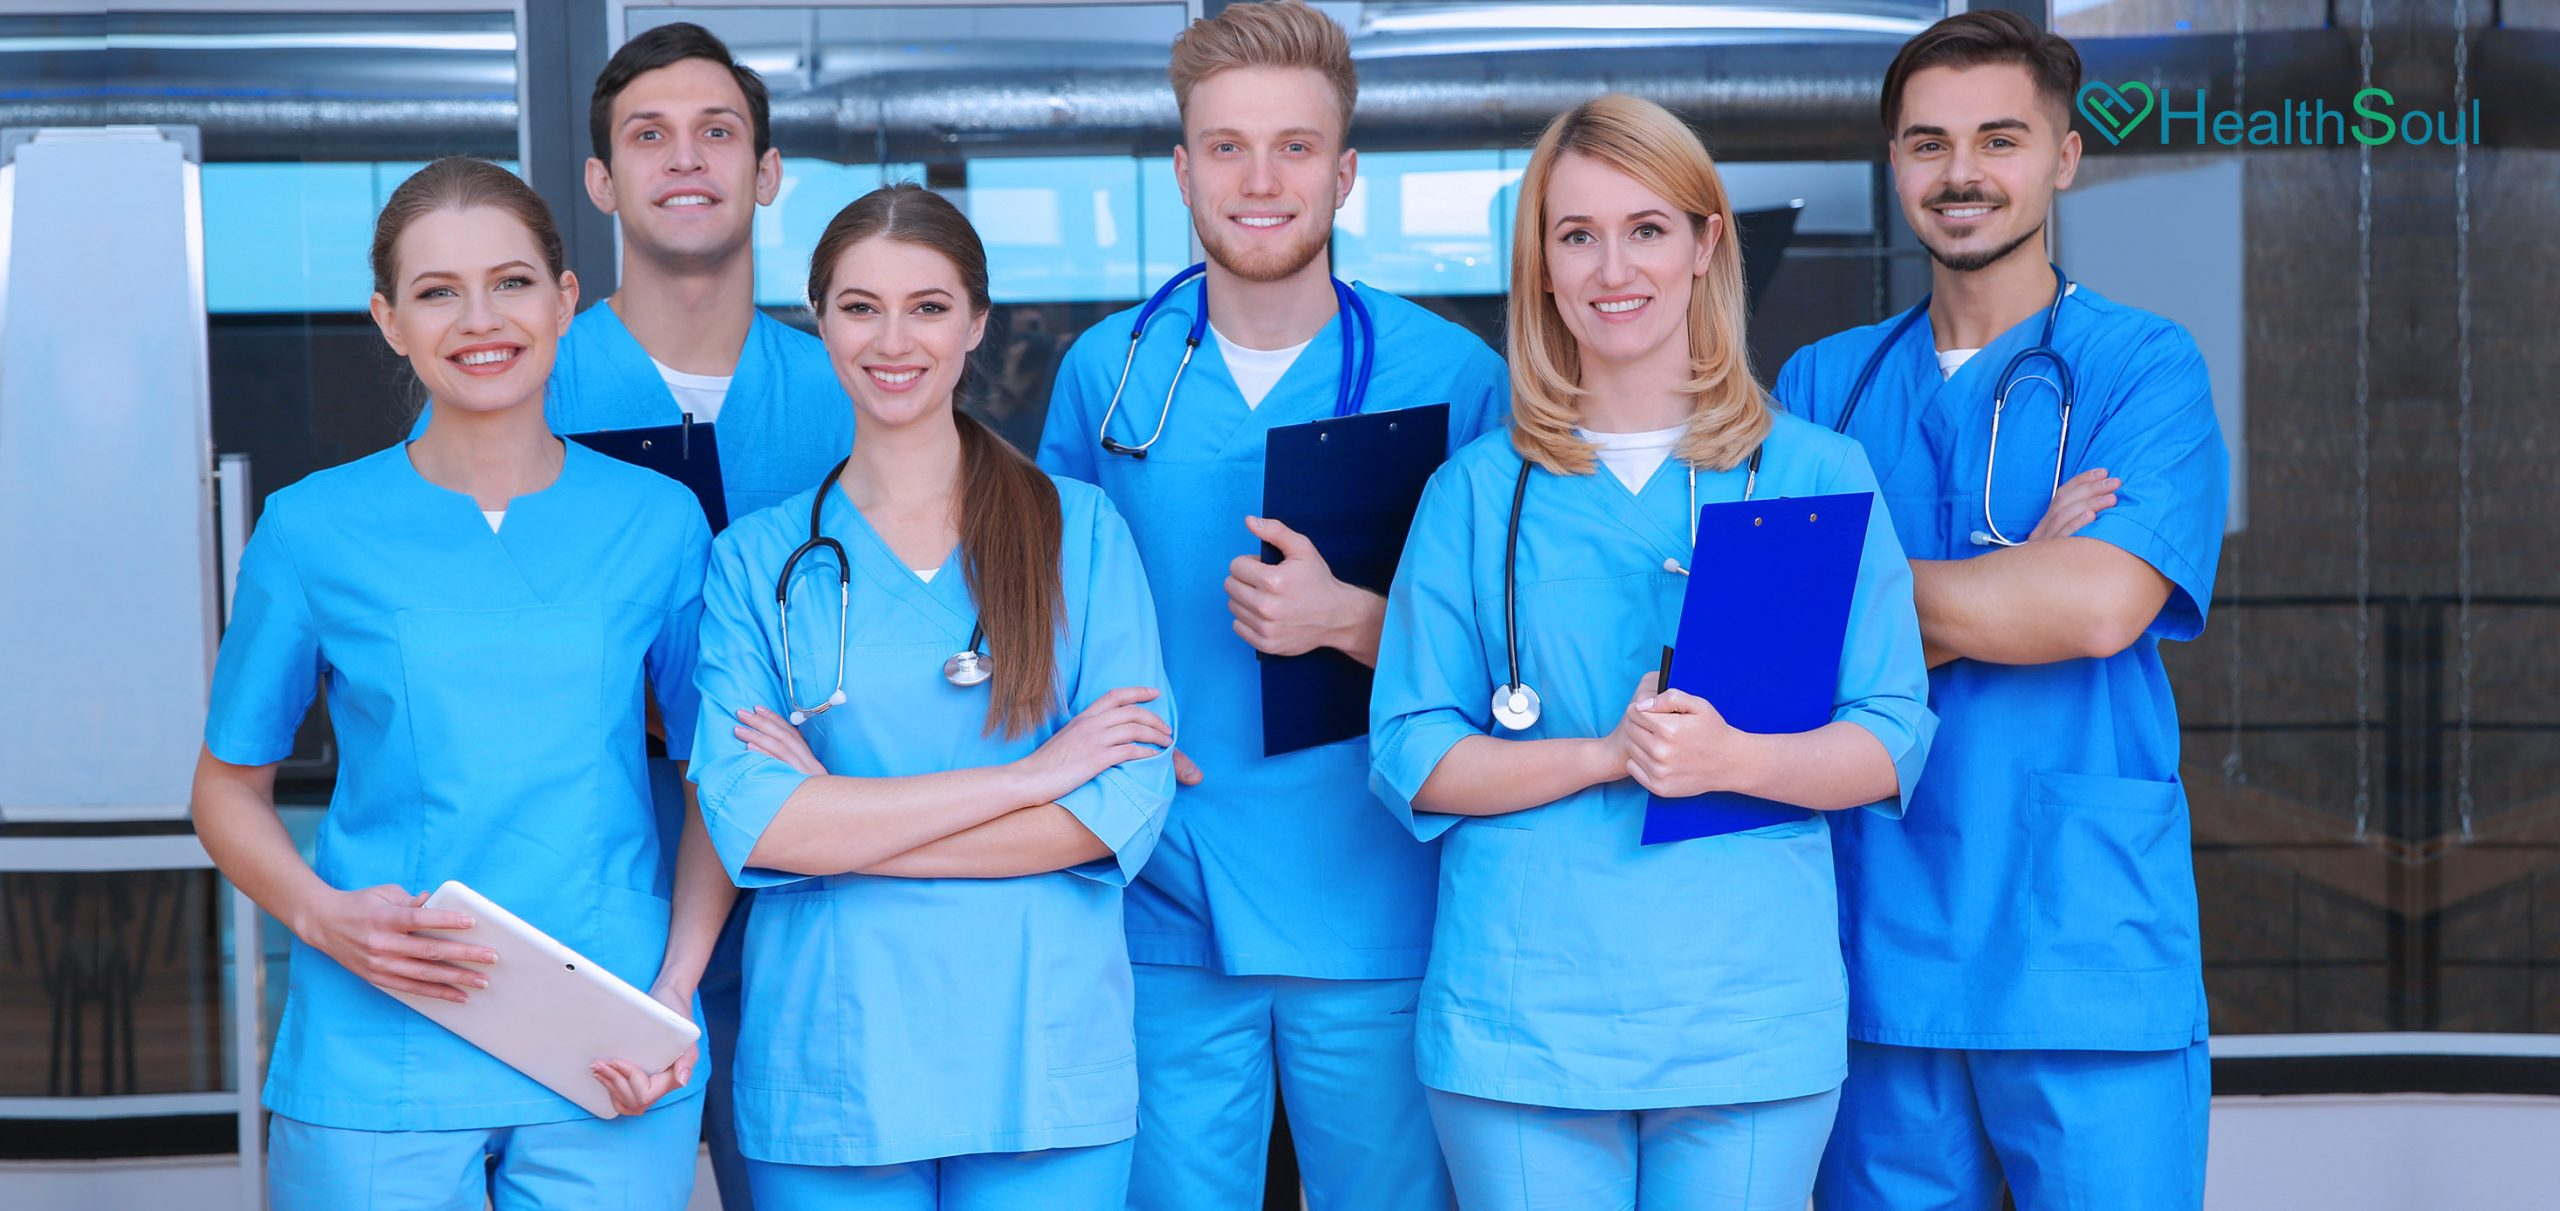 Practical Tips To Choose The Right Medical Nursing Scrubs | HealthSoul